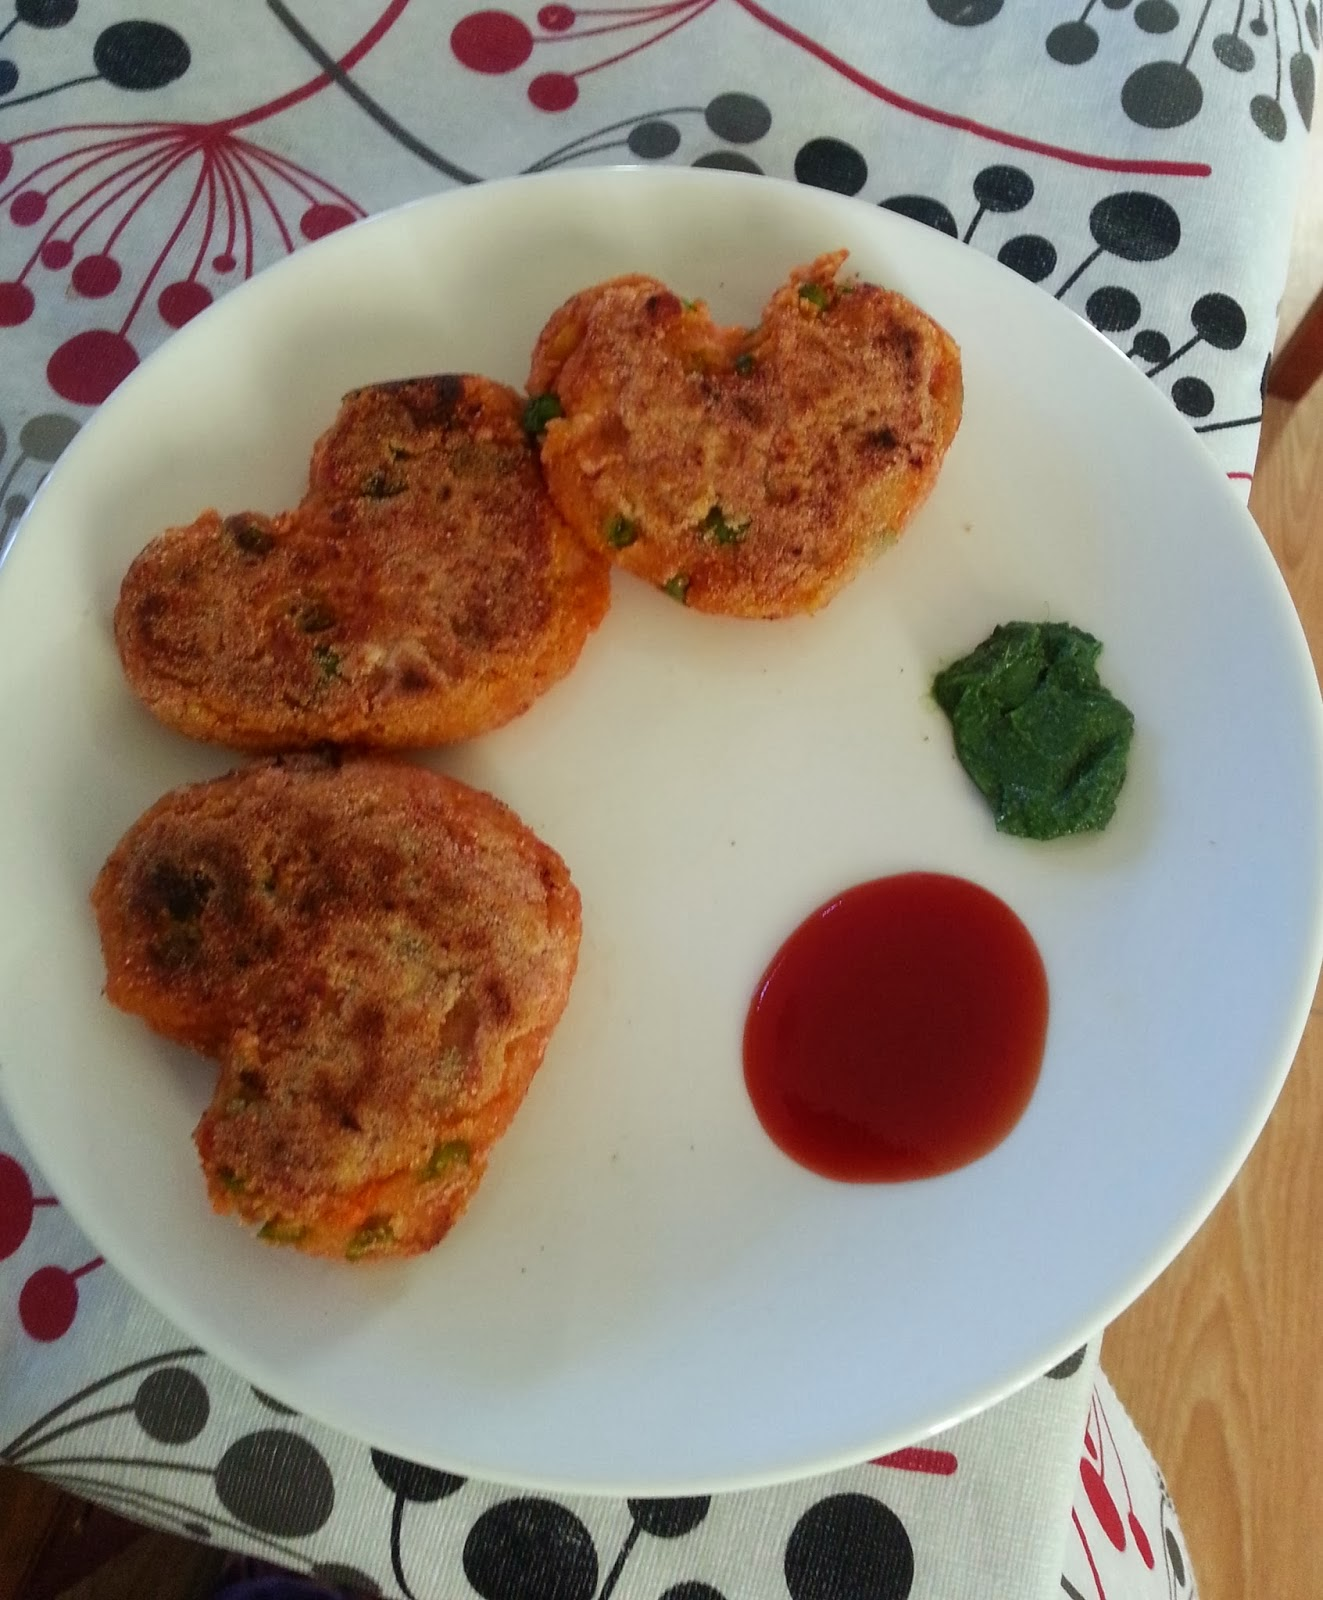 http://lav-art-craft-food.blogspot.com.au/2014/02/healthy-veg-cutlet-with-chickpea.html